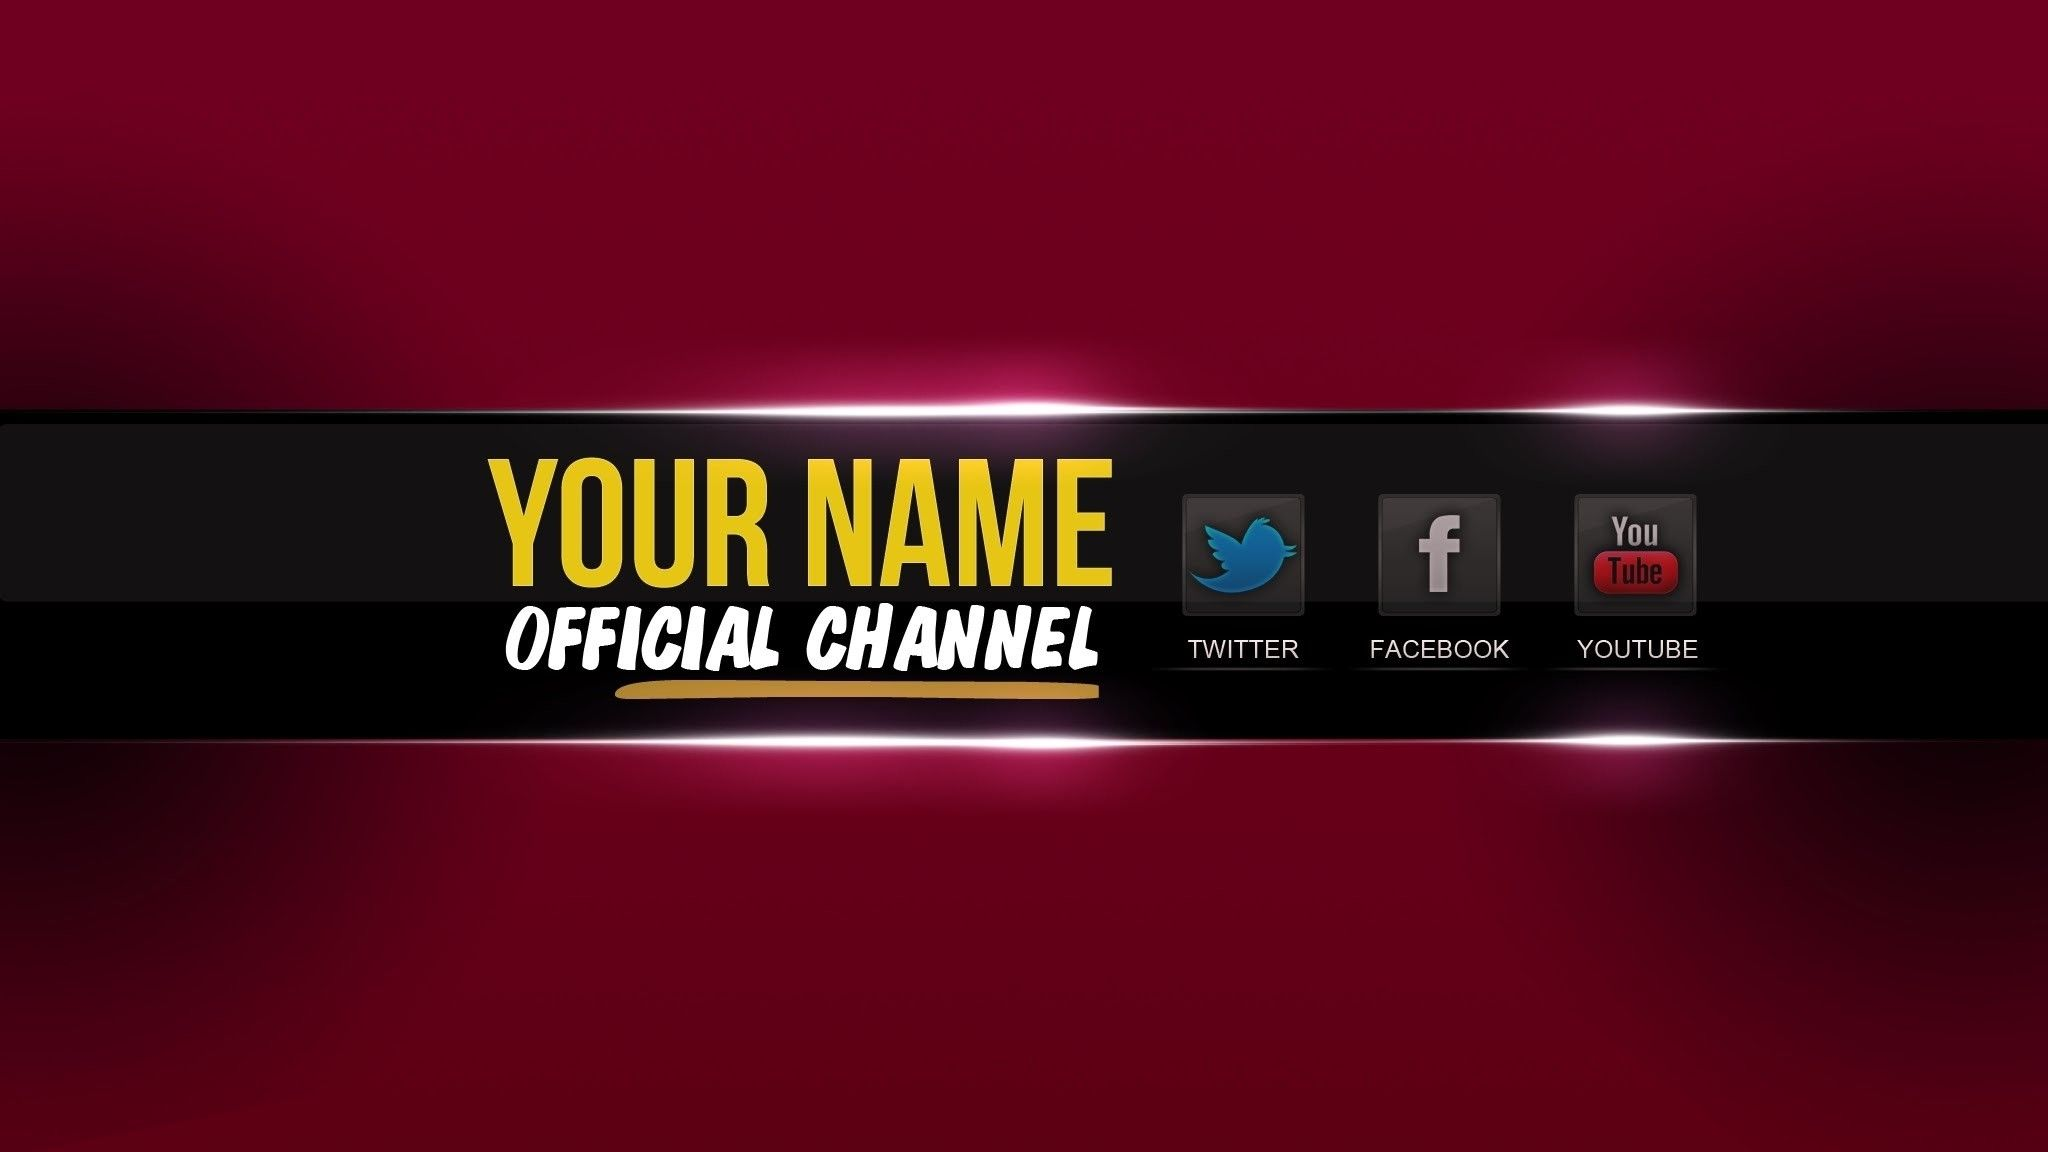 2048x1152 Youtube Banner Template Psd.